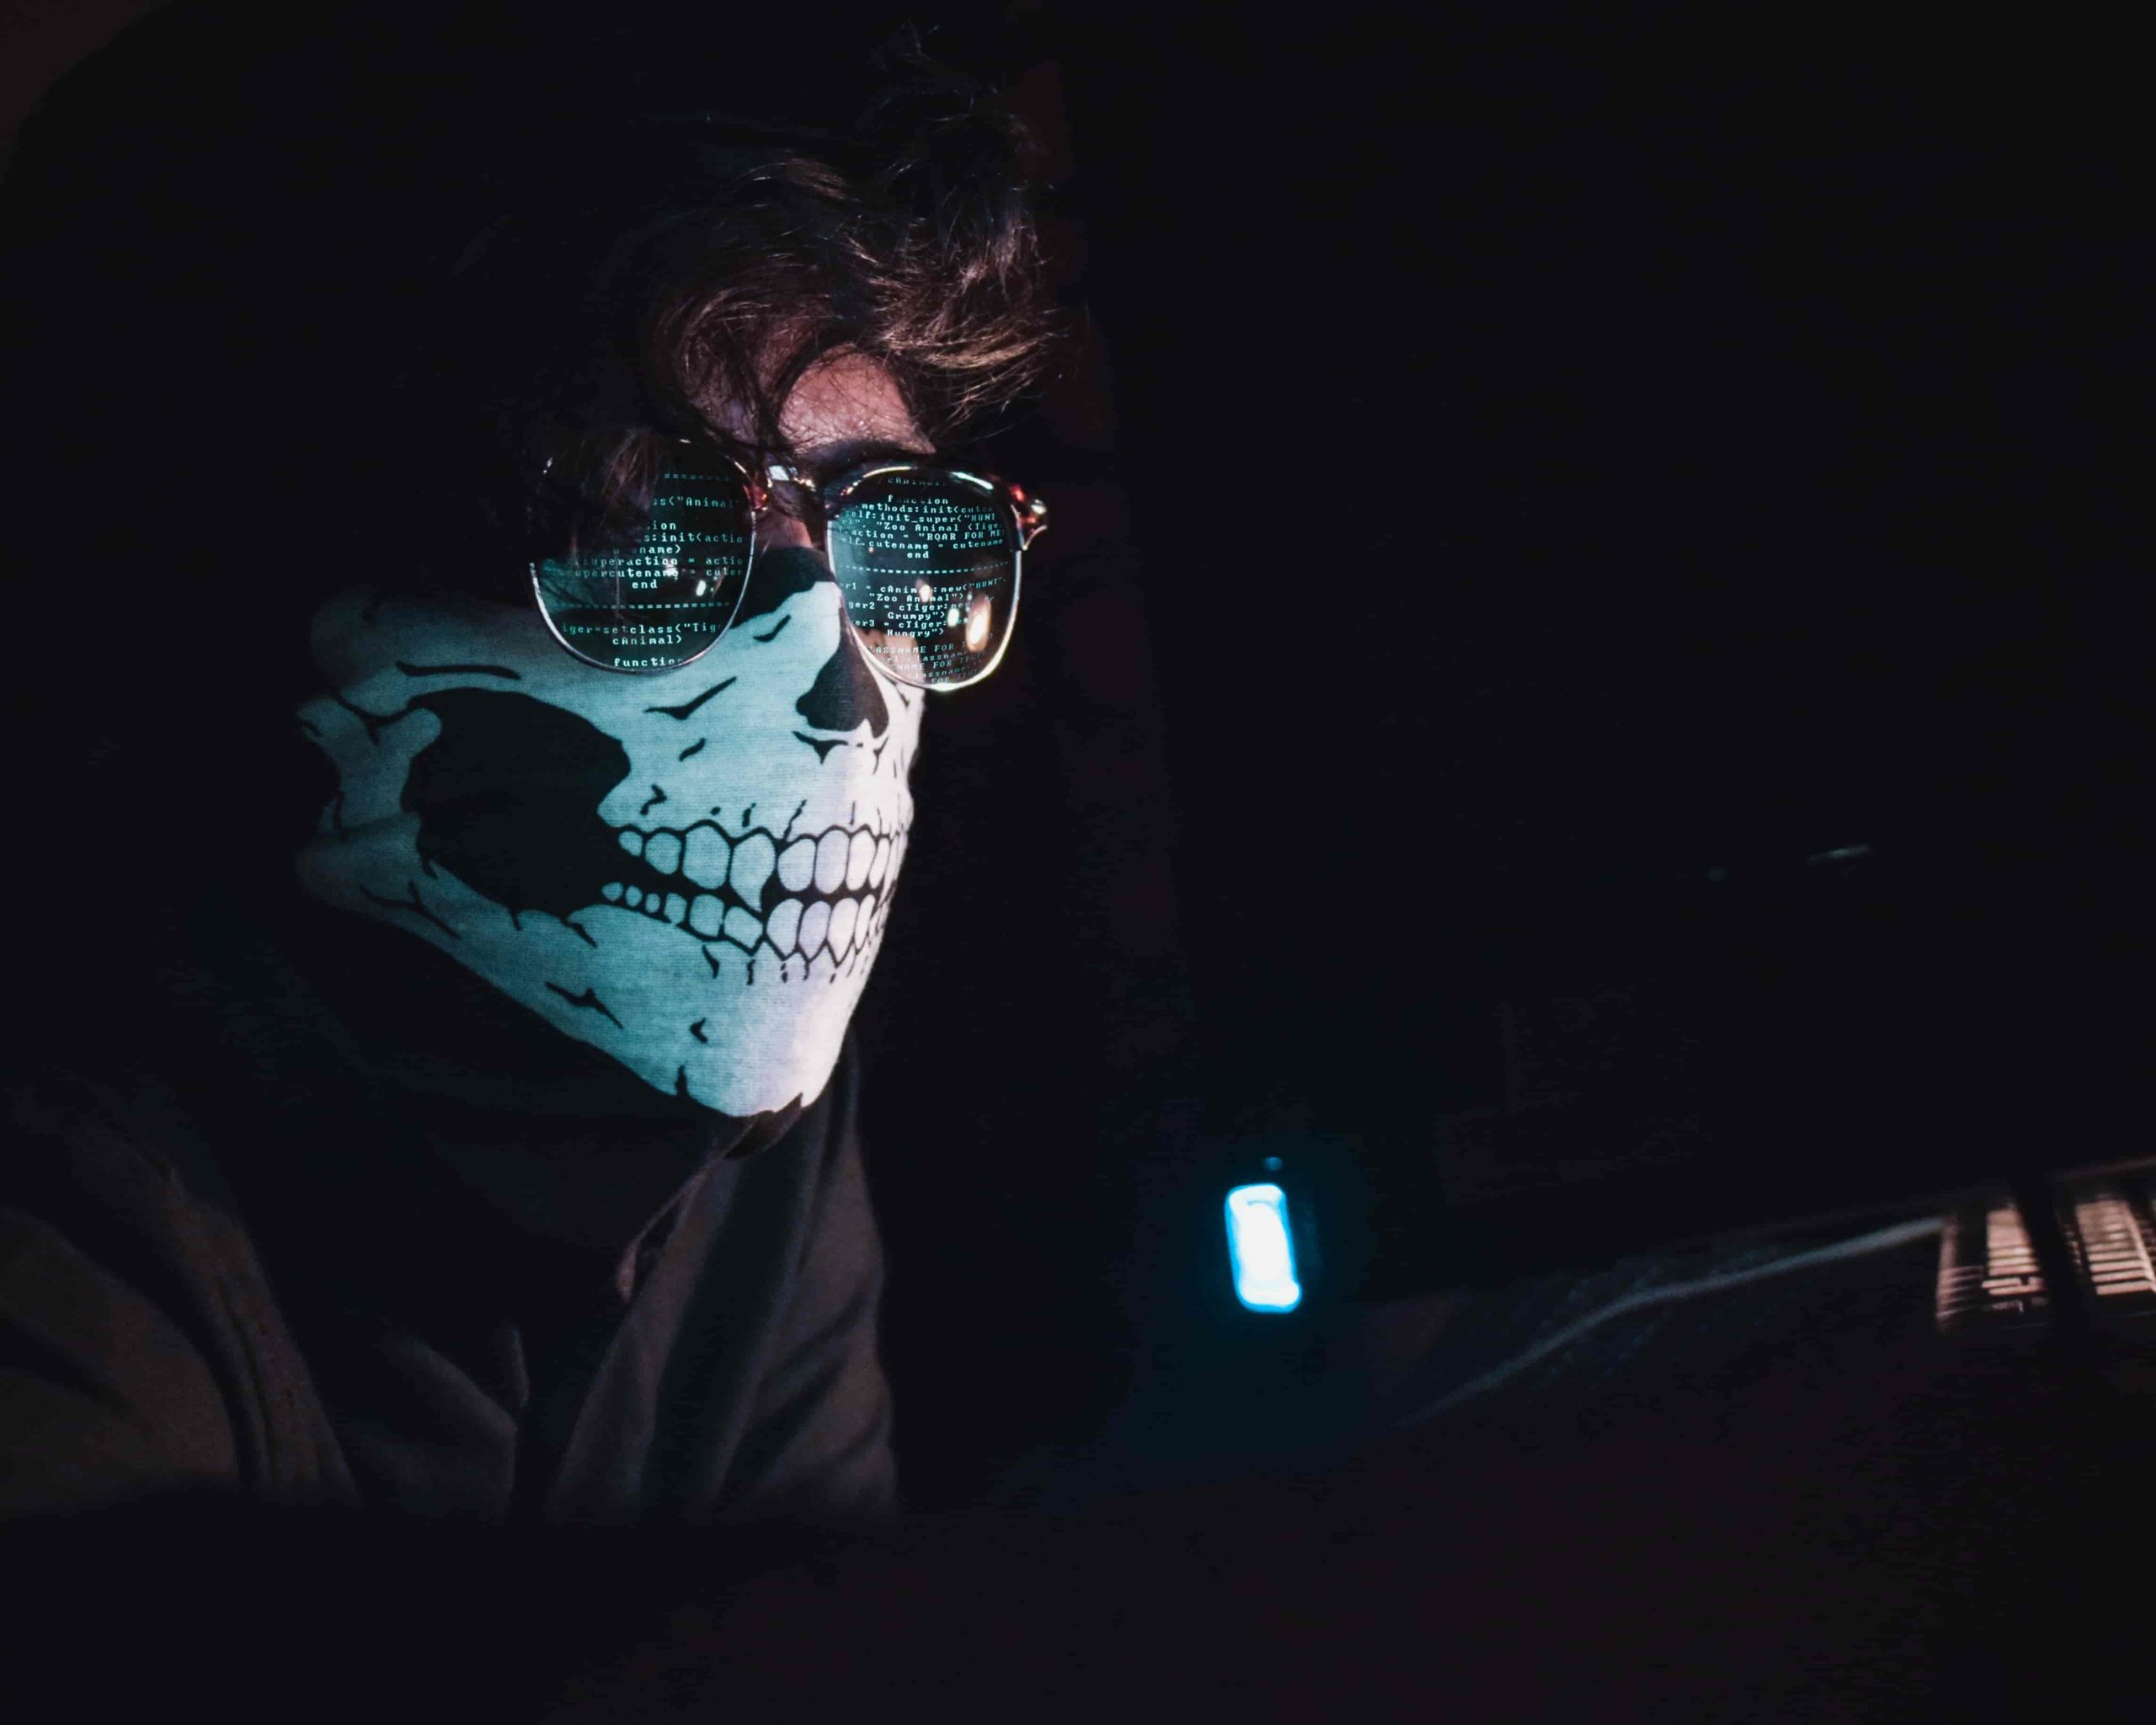 Cyber Hacker with skeleton mask and computer reflected in glasses